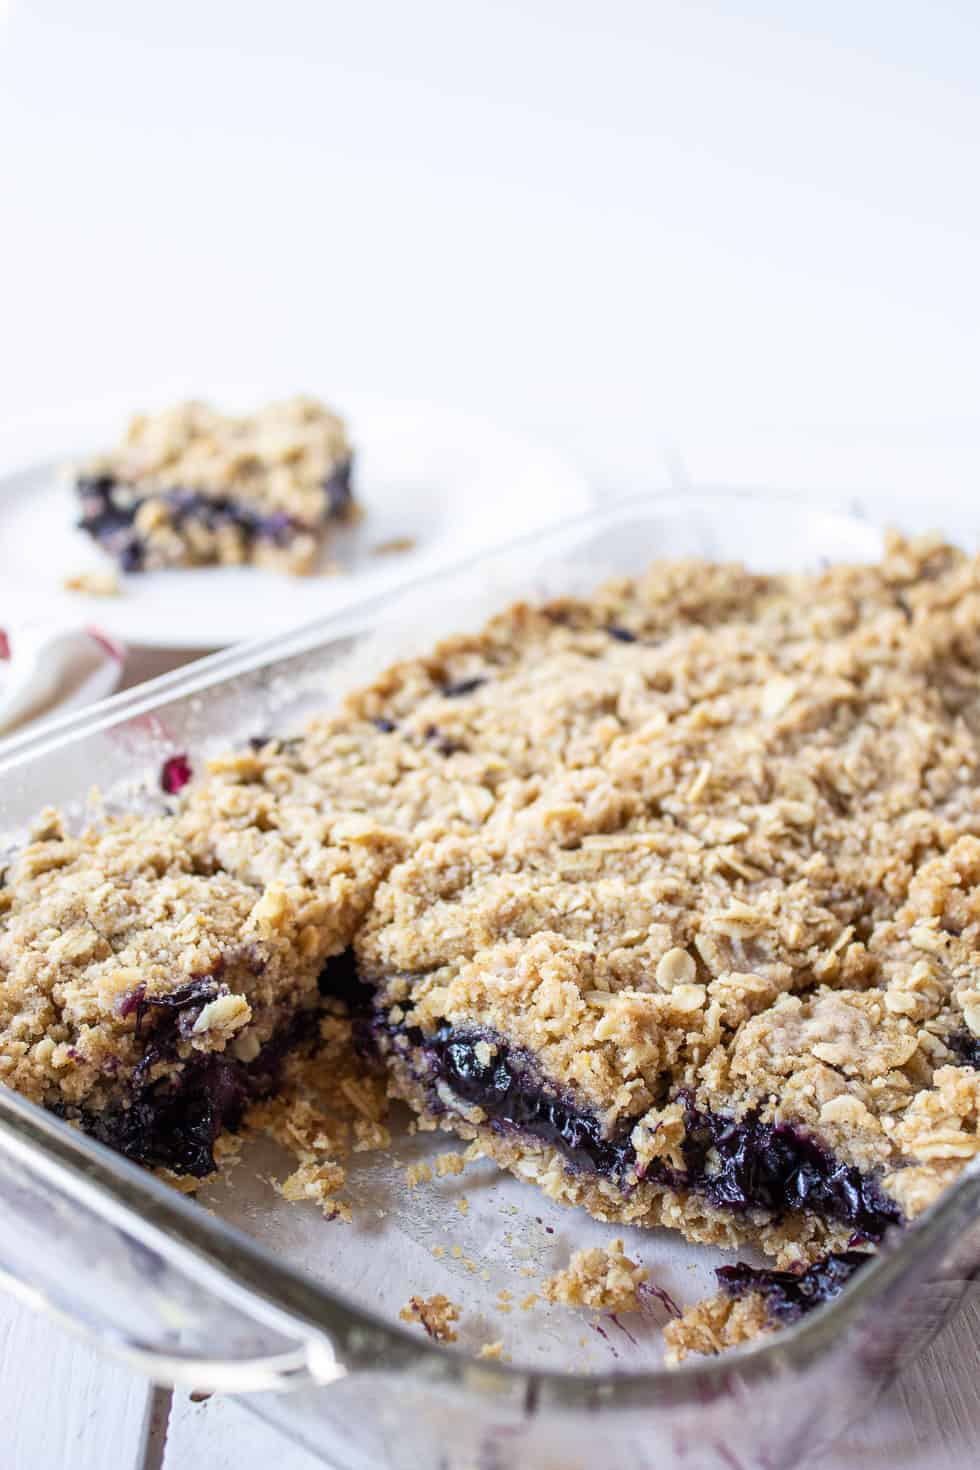 A glass dish filled with blueberry crumb bars.